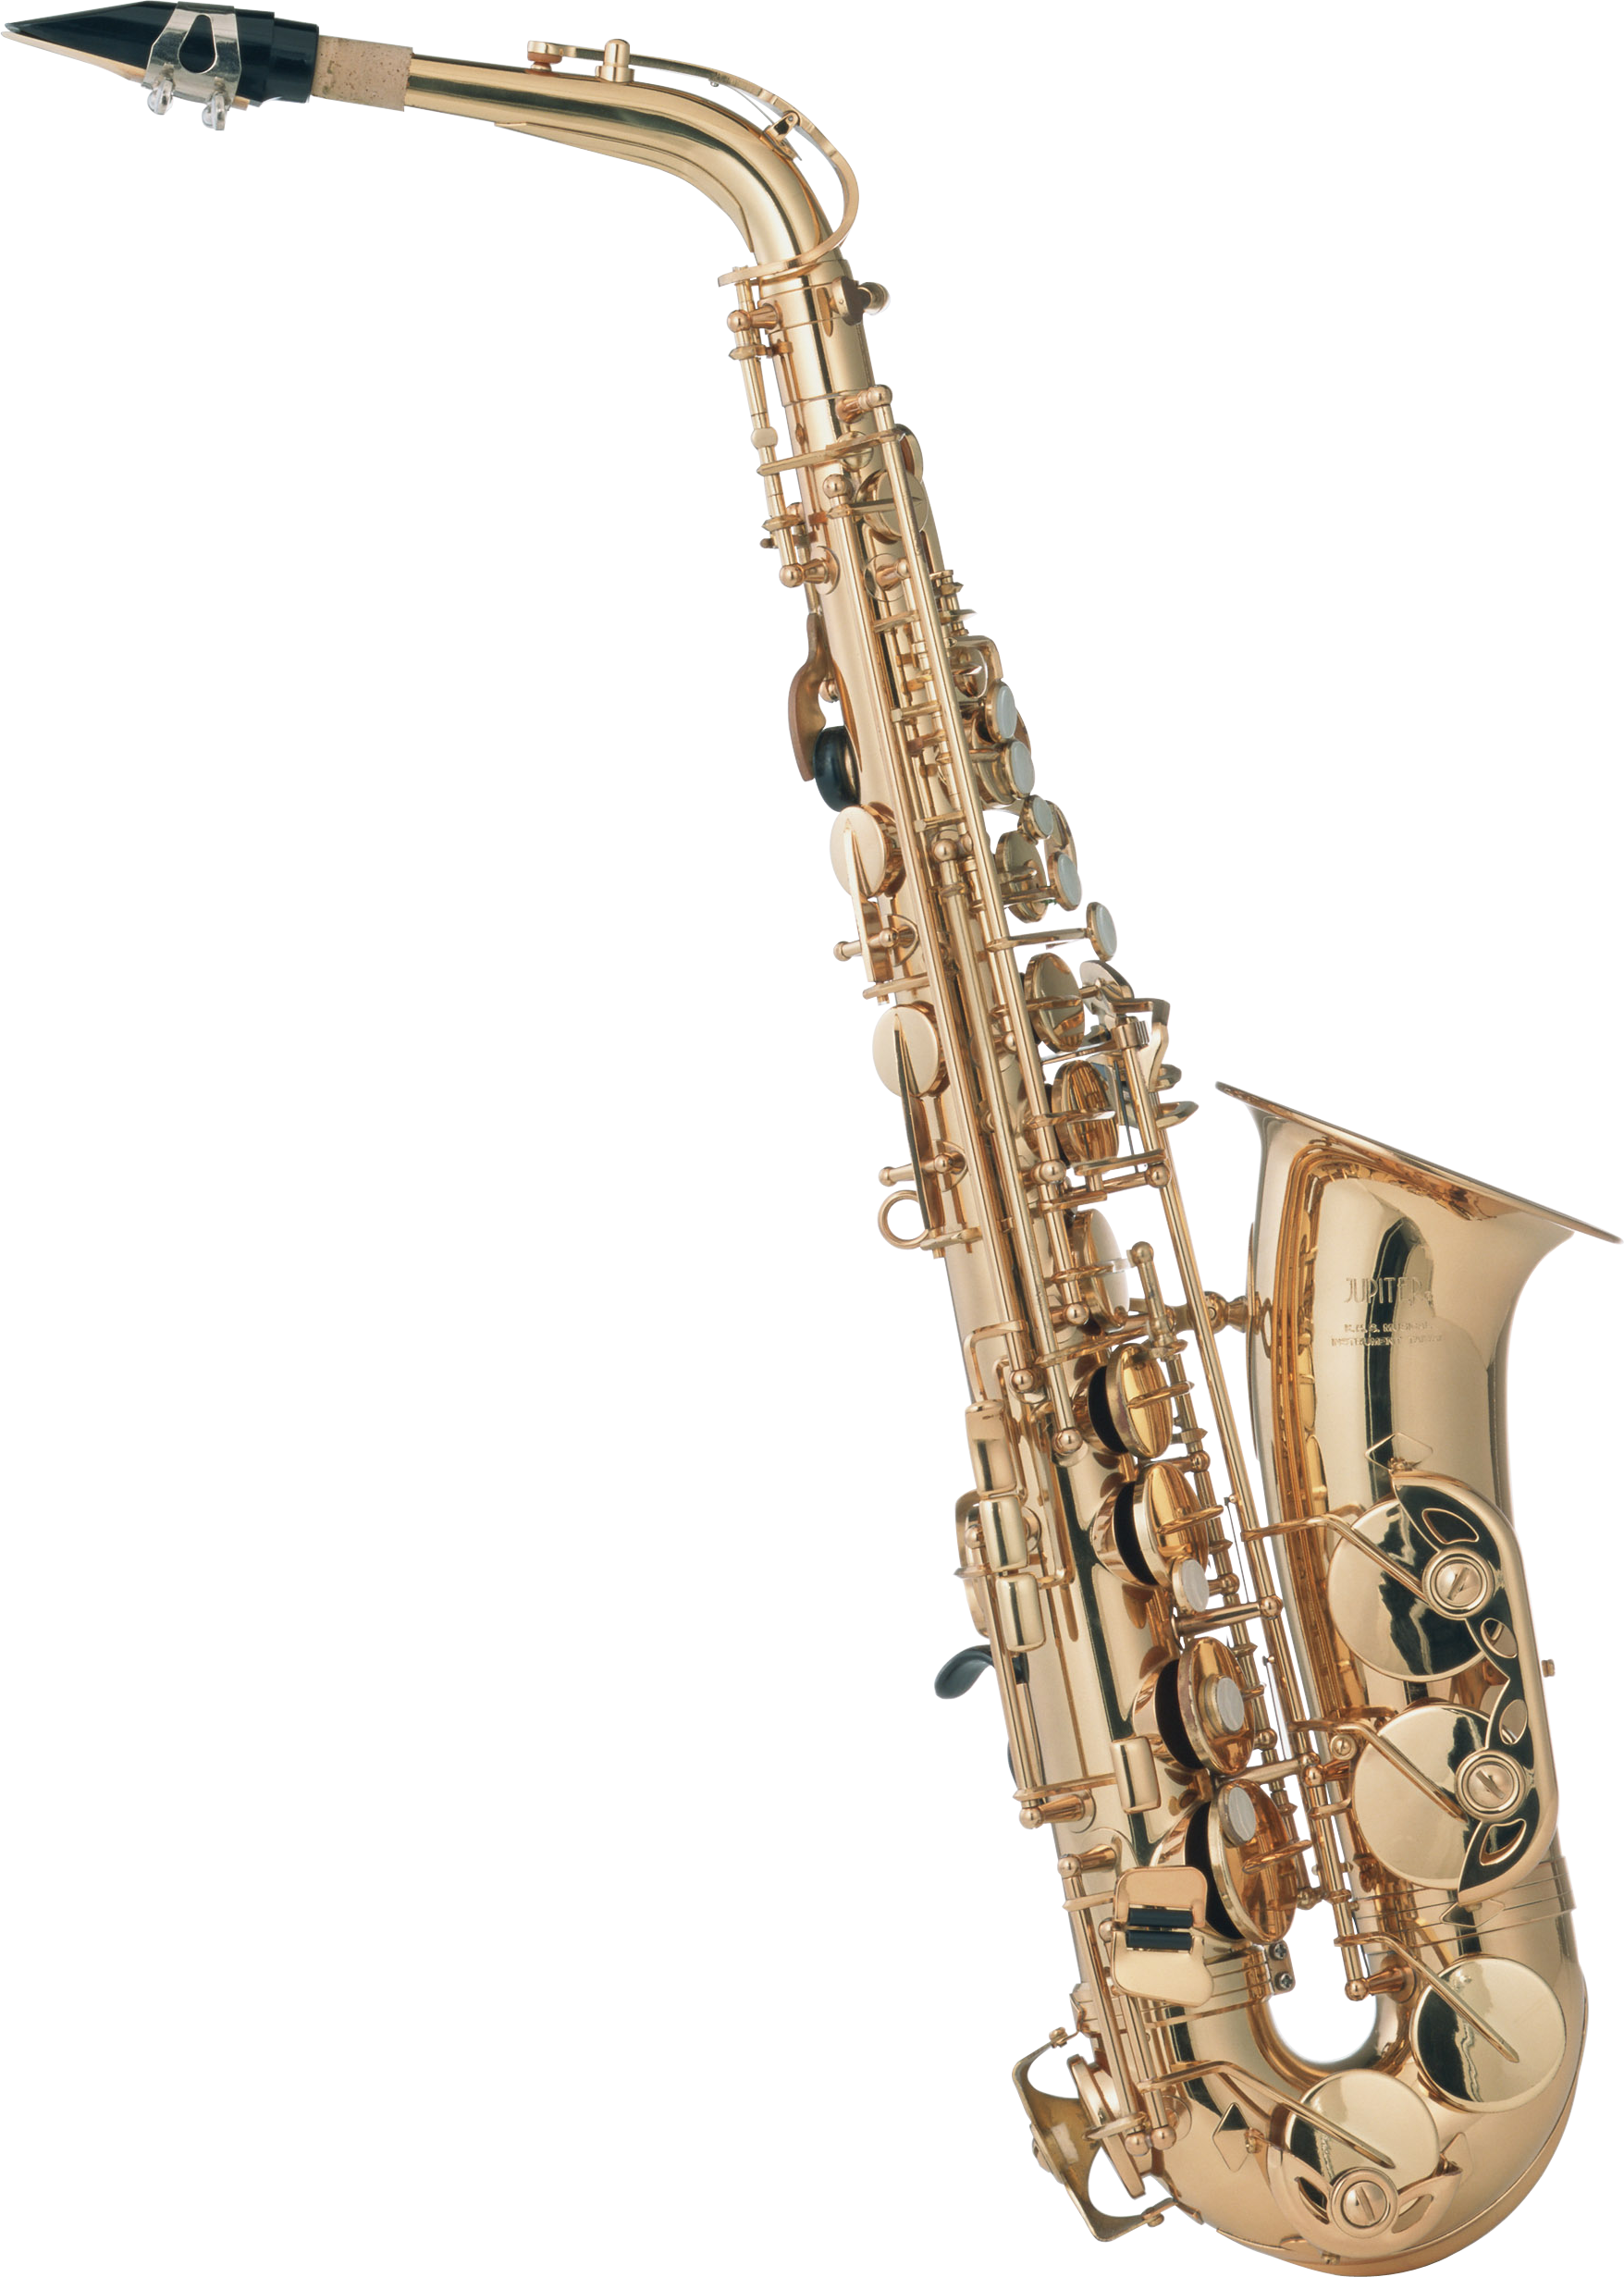 Clarinet clipart saxophone. Png image purepng free